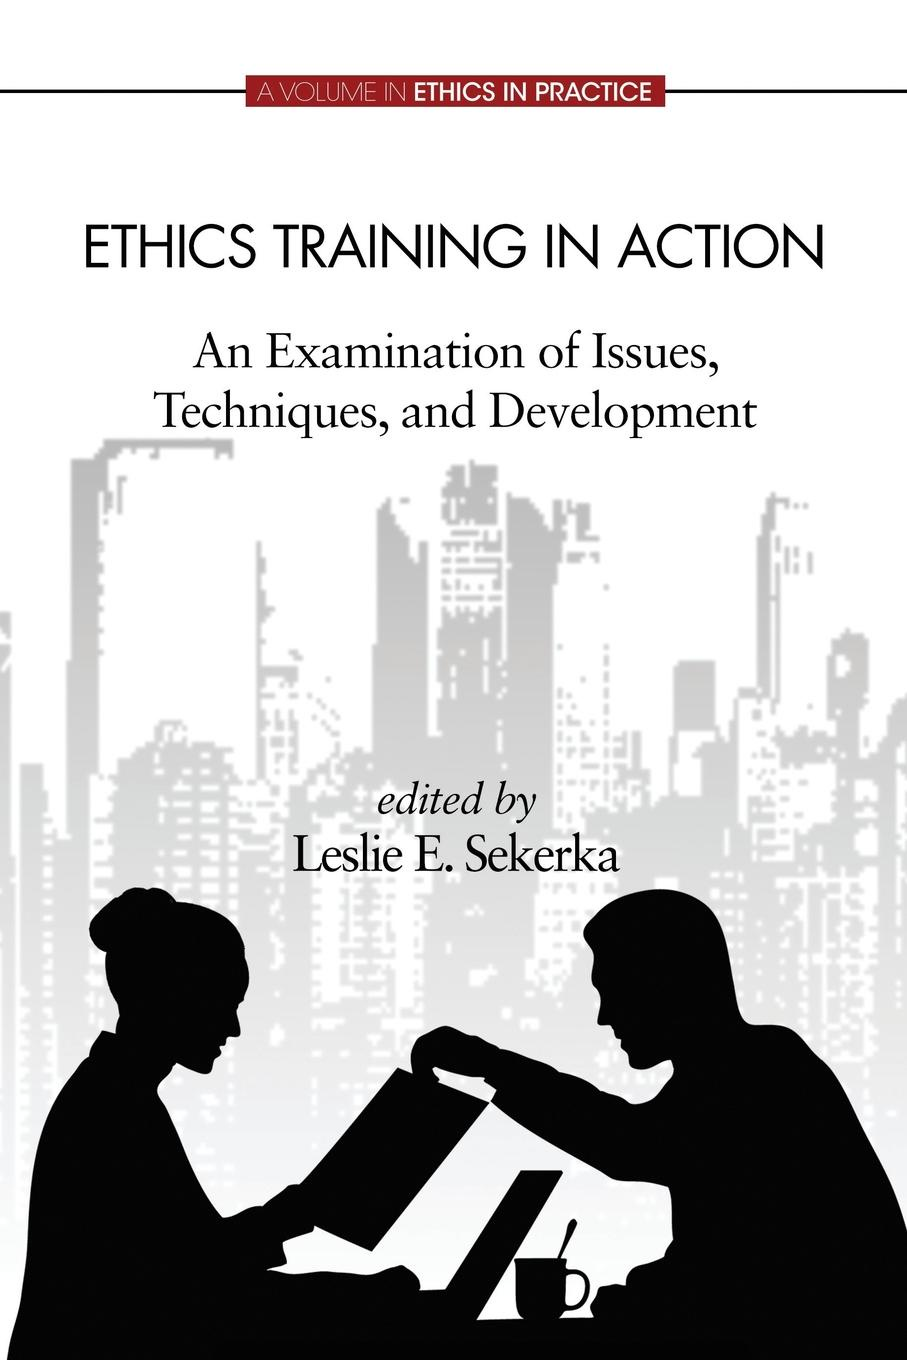 Ethics Training in Action. An Examination of Issues, Techniques, and Development hunt and vitell ethics model in analyzing monsanto case